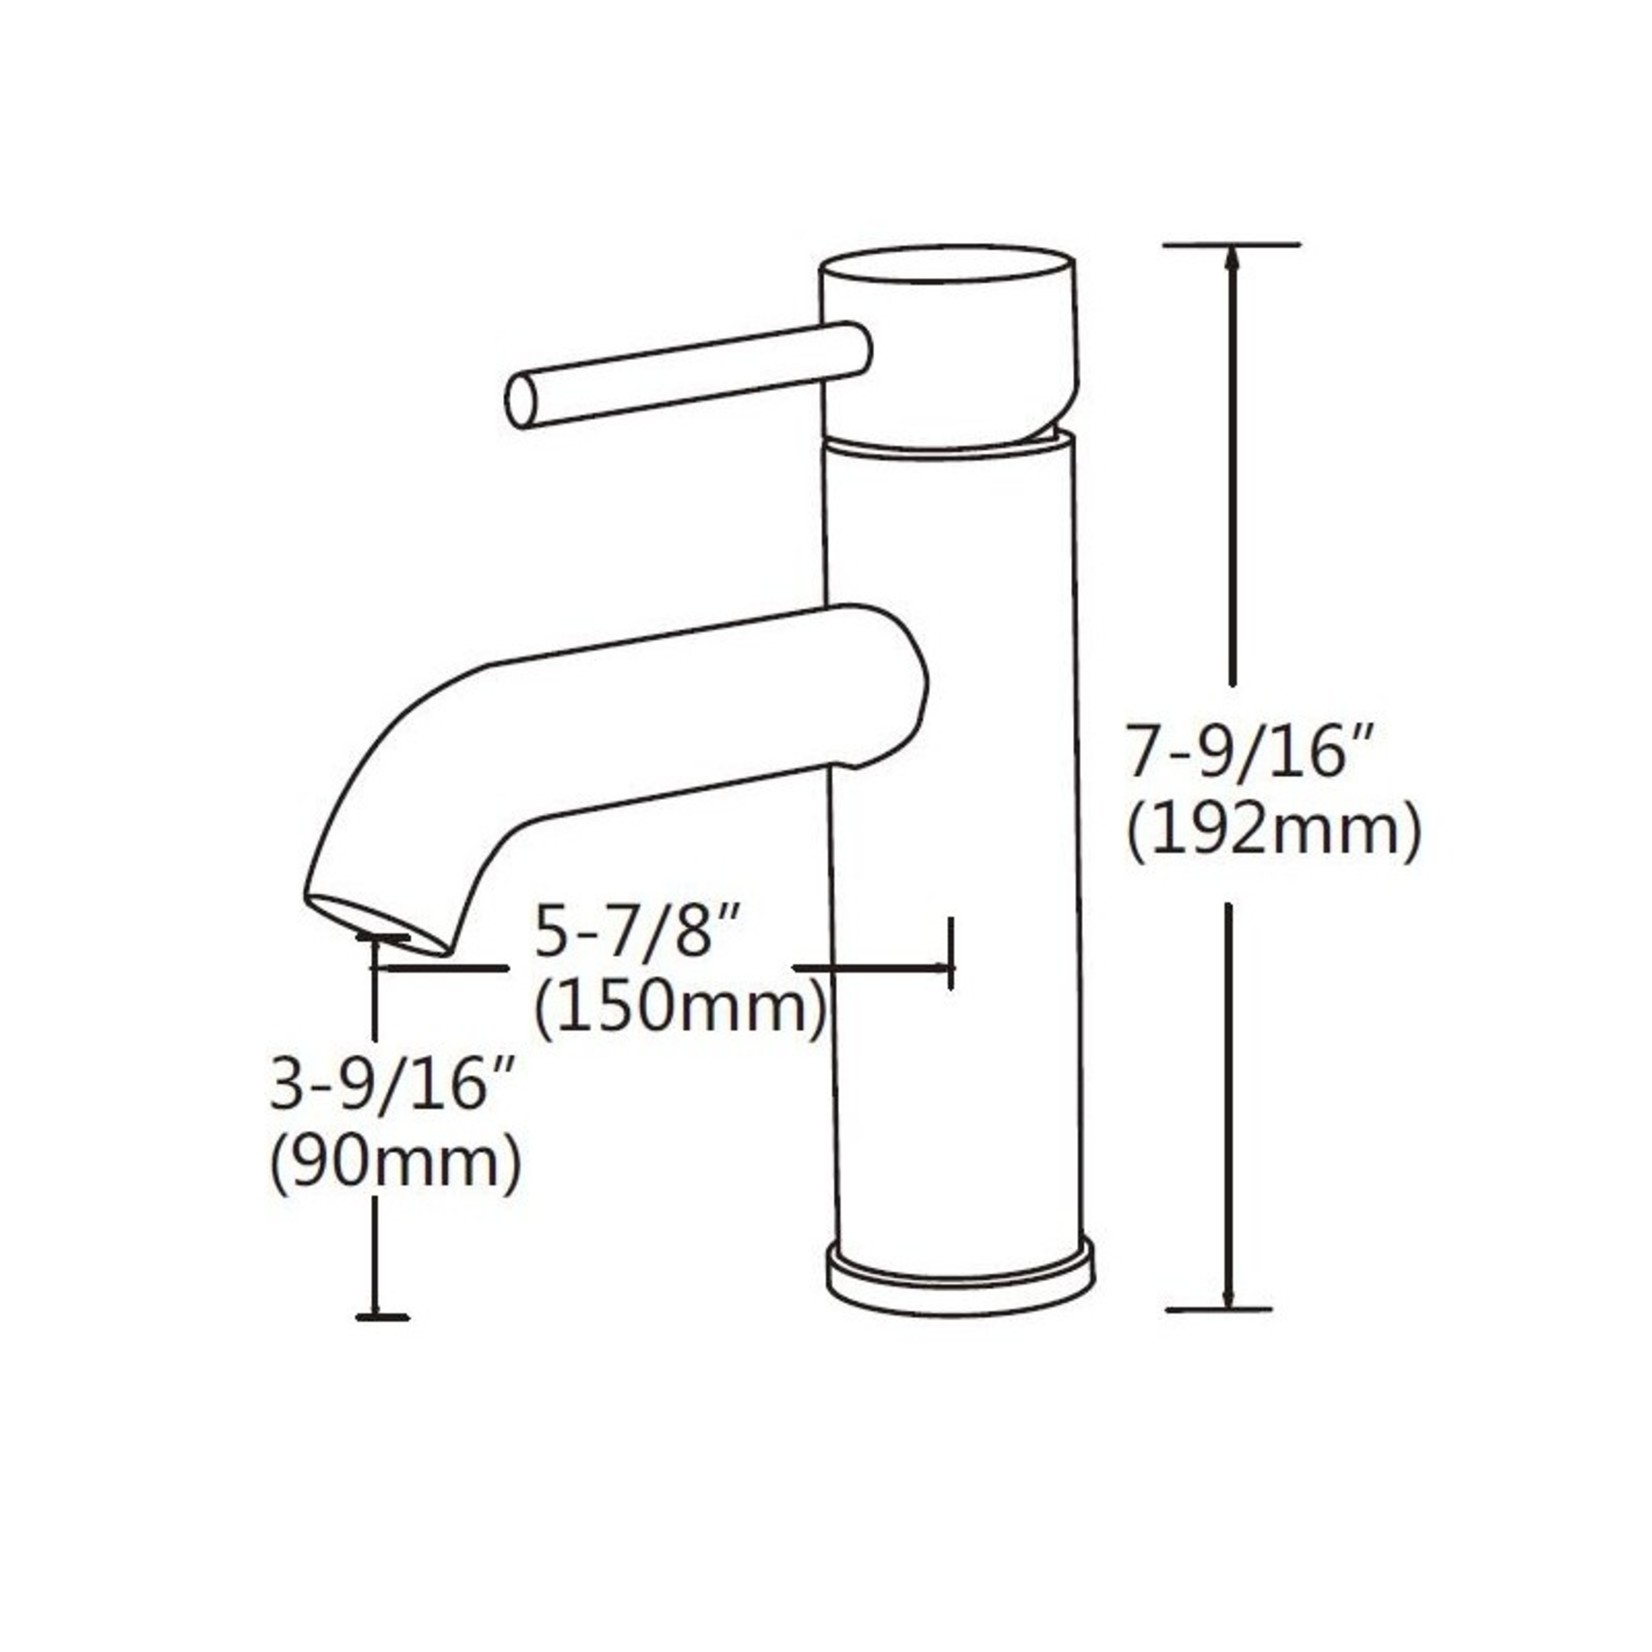 Elyn collection chrome sink faucet 113-10